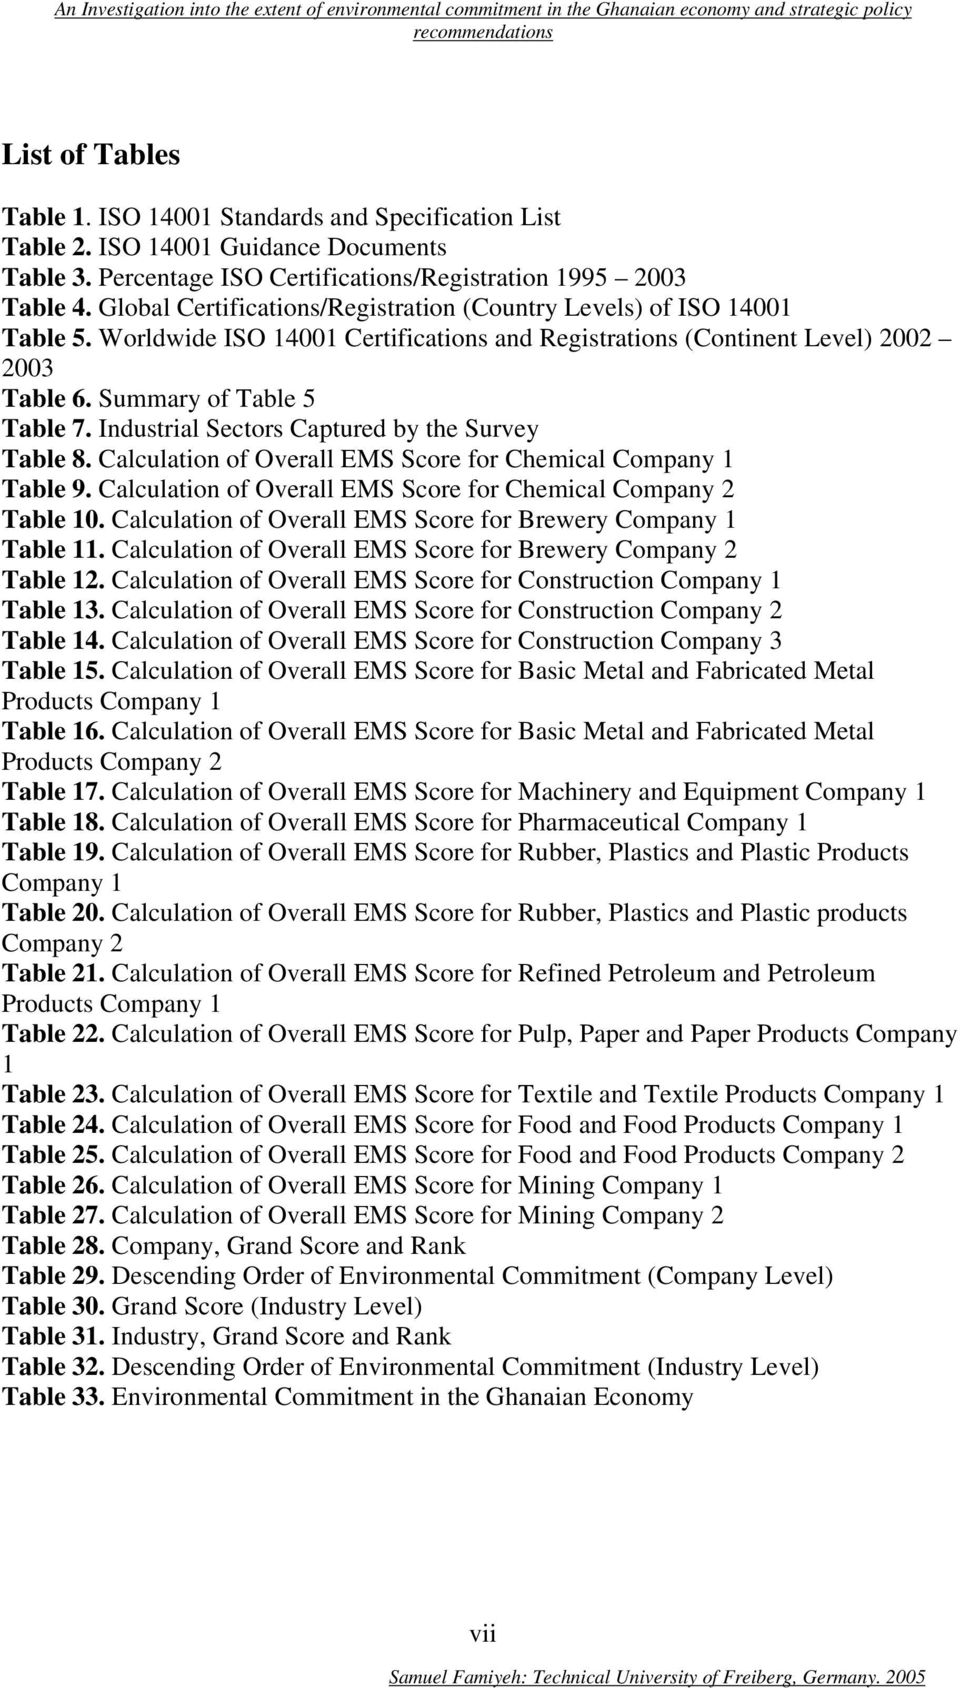 Industrial Sectors Captured by the Survey Table 8. Calculation of Overall EMS Score for Chemical Company 1 Table 9. Calculation of Overall EMS Score for Chemical Company 2 Table 10.